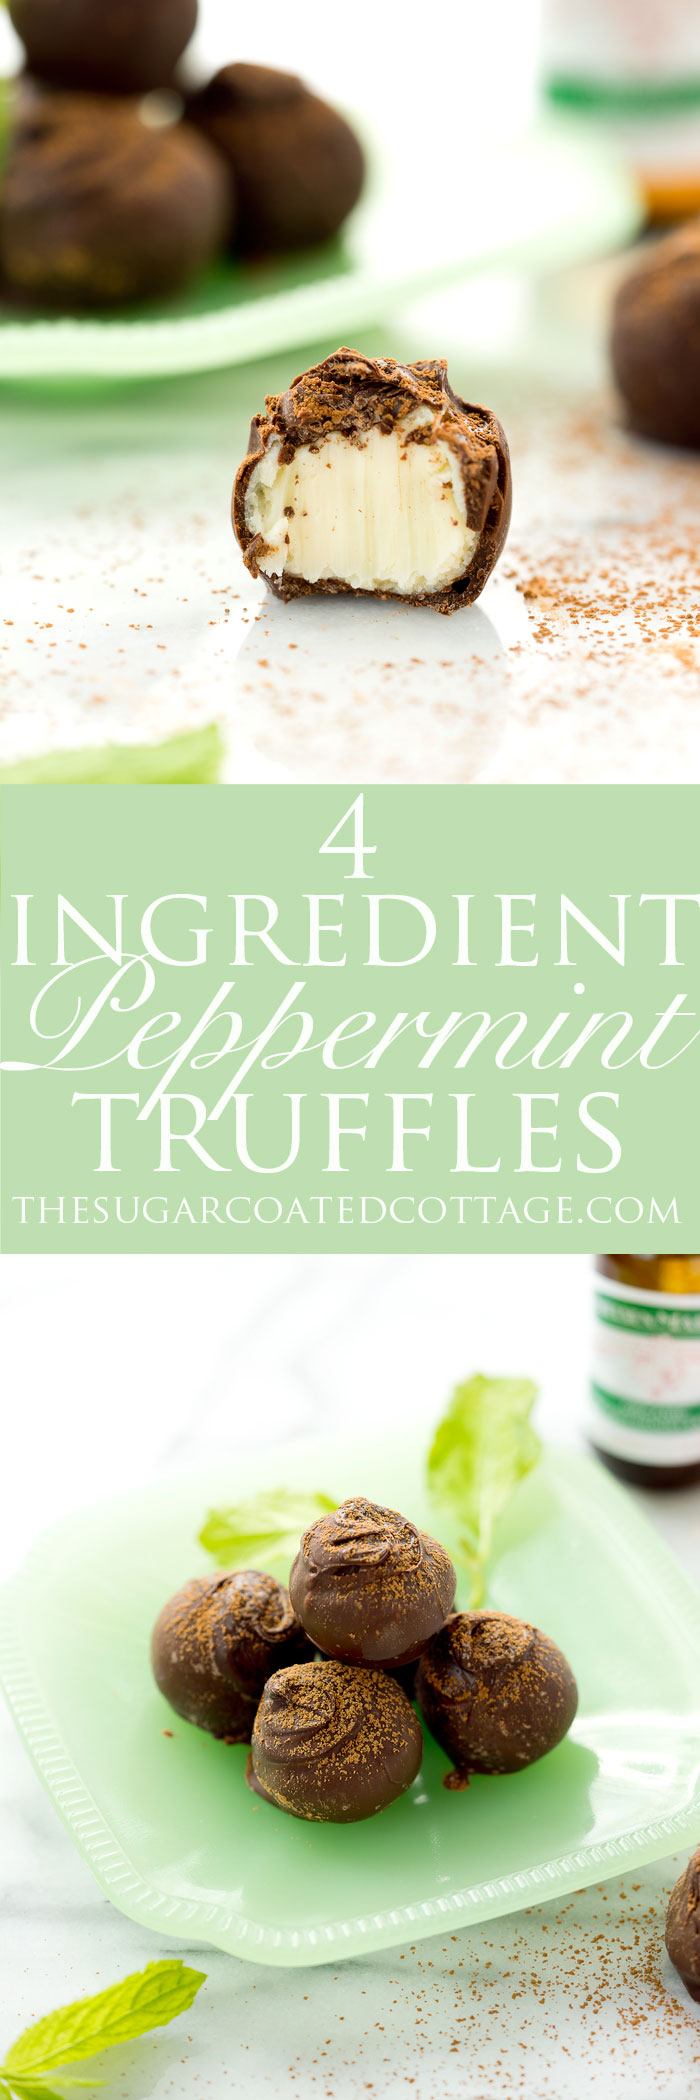 4 Ingredient Peppermint Truffles. The best peppermint truffles! | #nobake #recipe #chocolate #candy | thesugarcoatedcottage.com